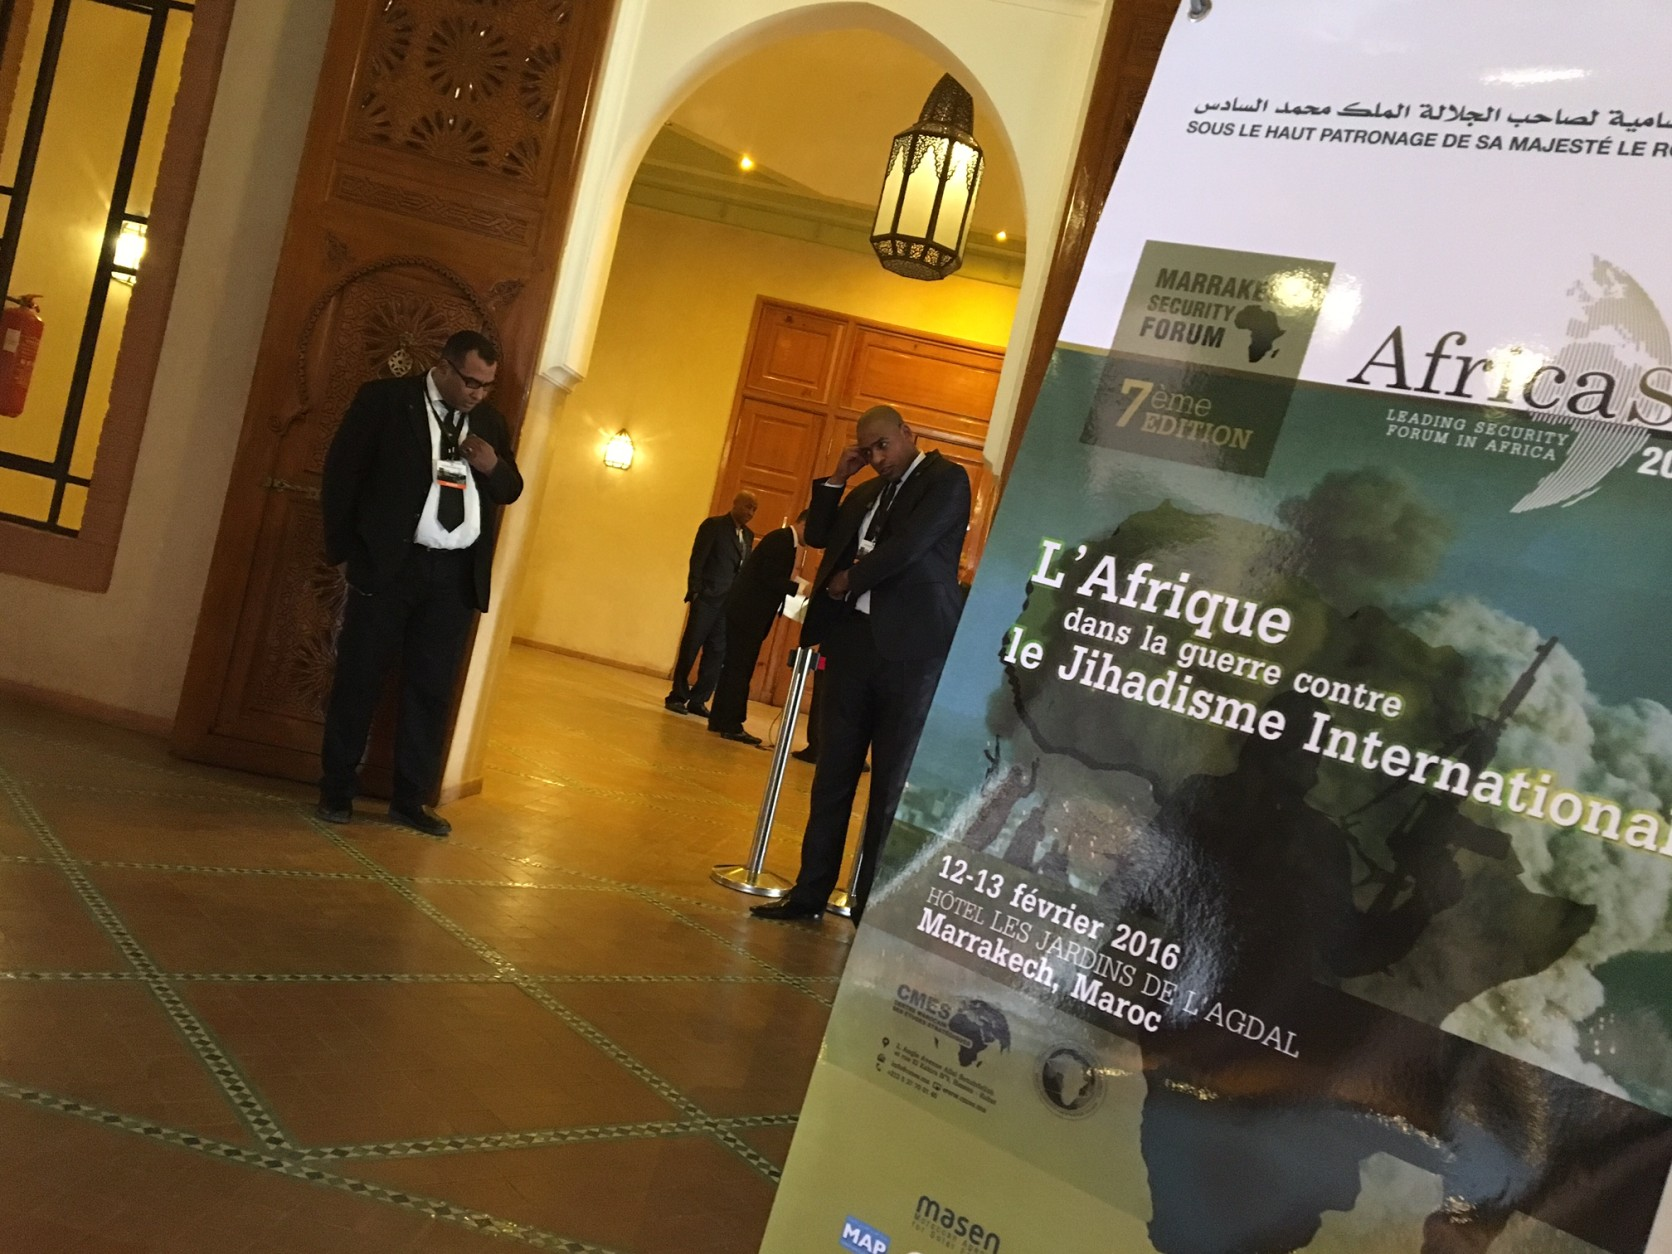 Amid stepped up security, hundreds of political, intelligence and military officials from all over the world gathered in Morocco for the Marrakech Security Forum to urgently confront the worsening terrorism problem. U.S. political and military decisions of the past, which some in attendance called mistakes, were the target of strong criticism. (WTOP/J.J. Green)